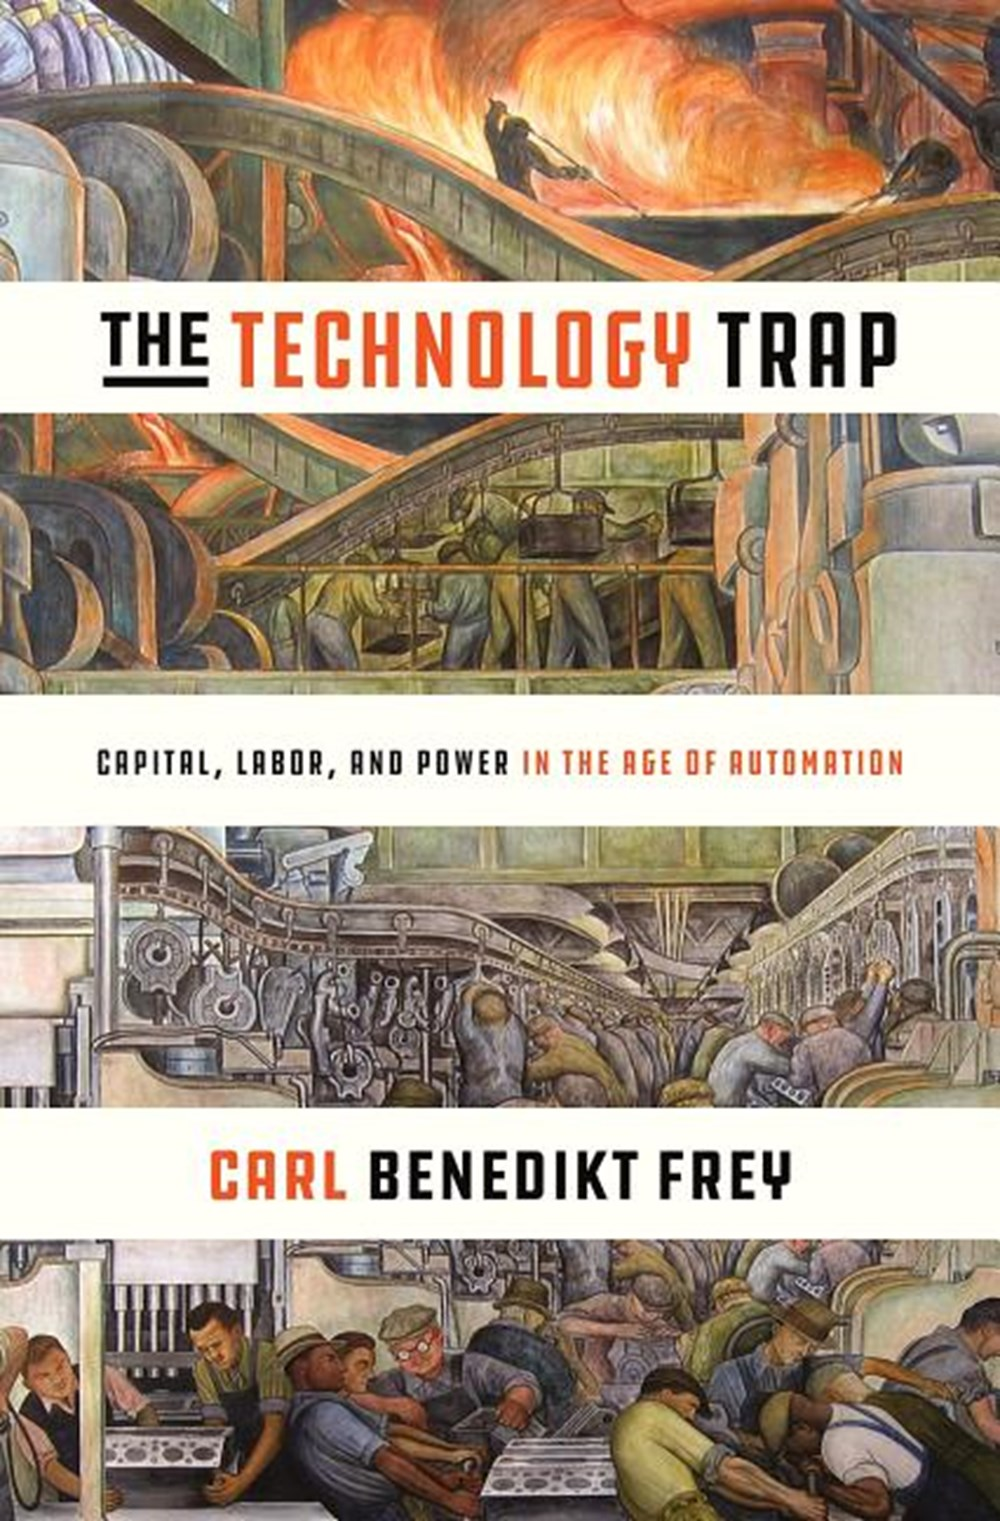 Technology Trap: Capital, Labor, and Power in the Age of Automation